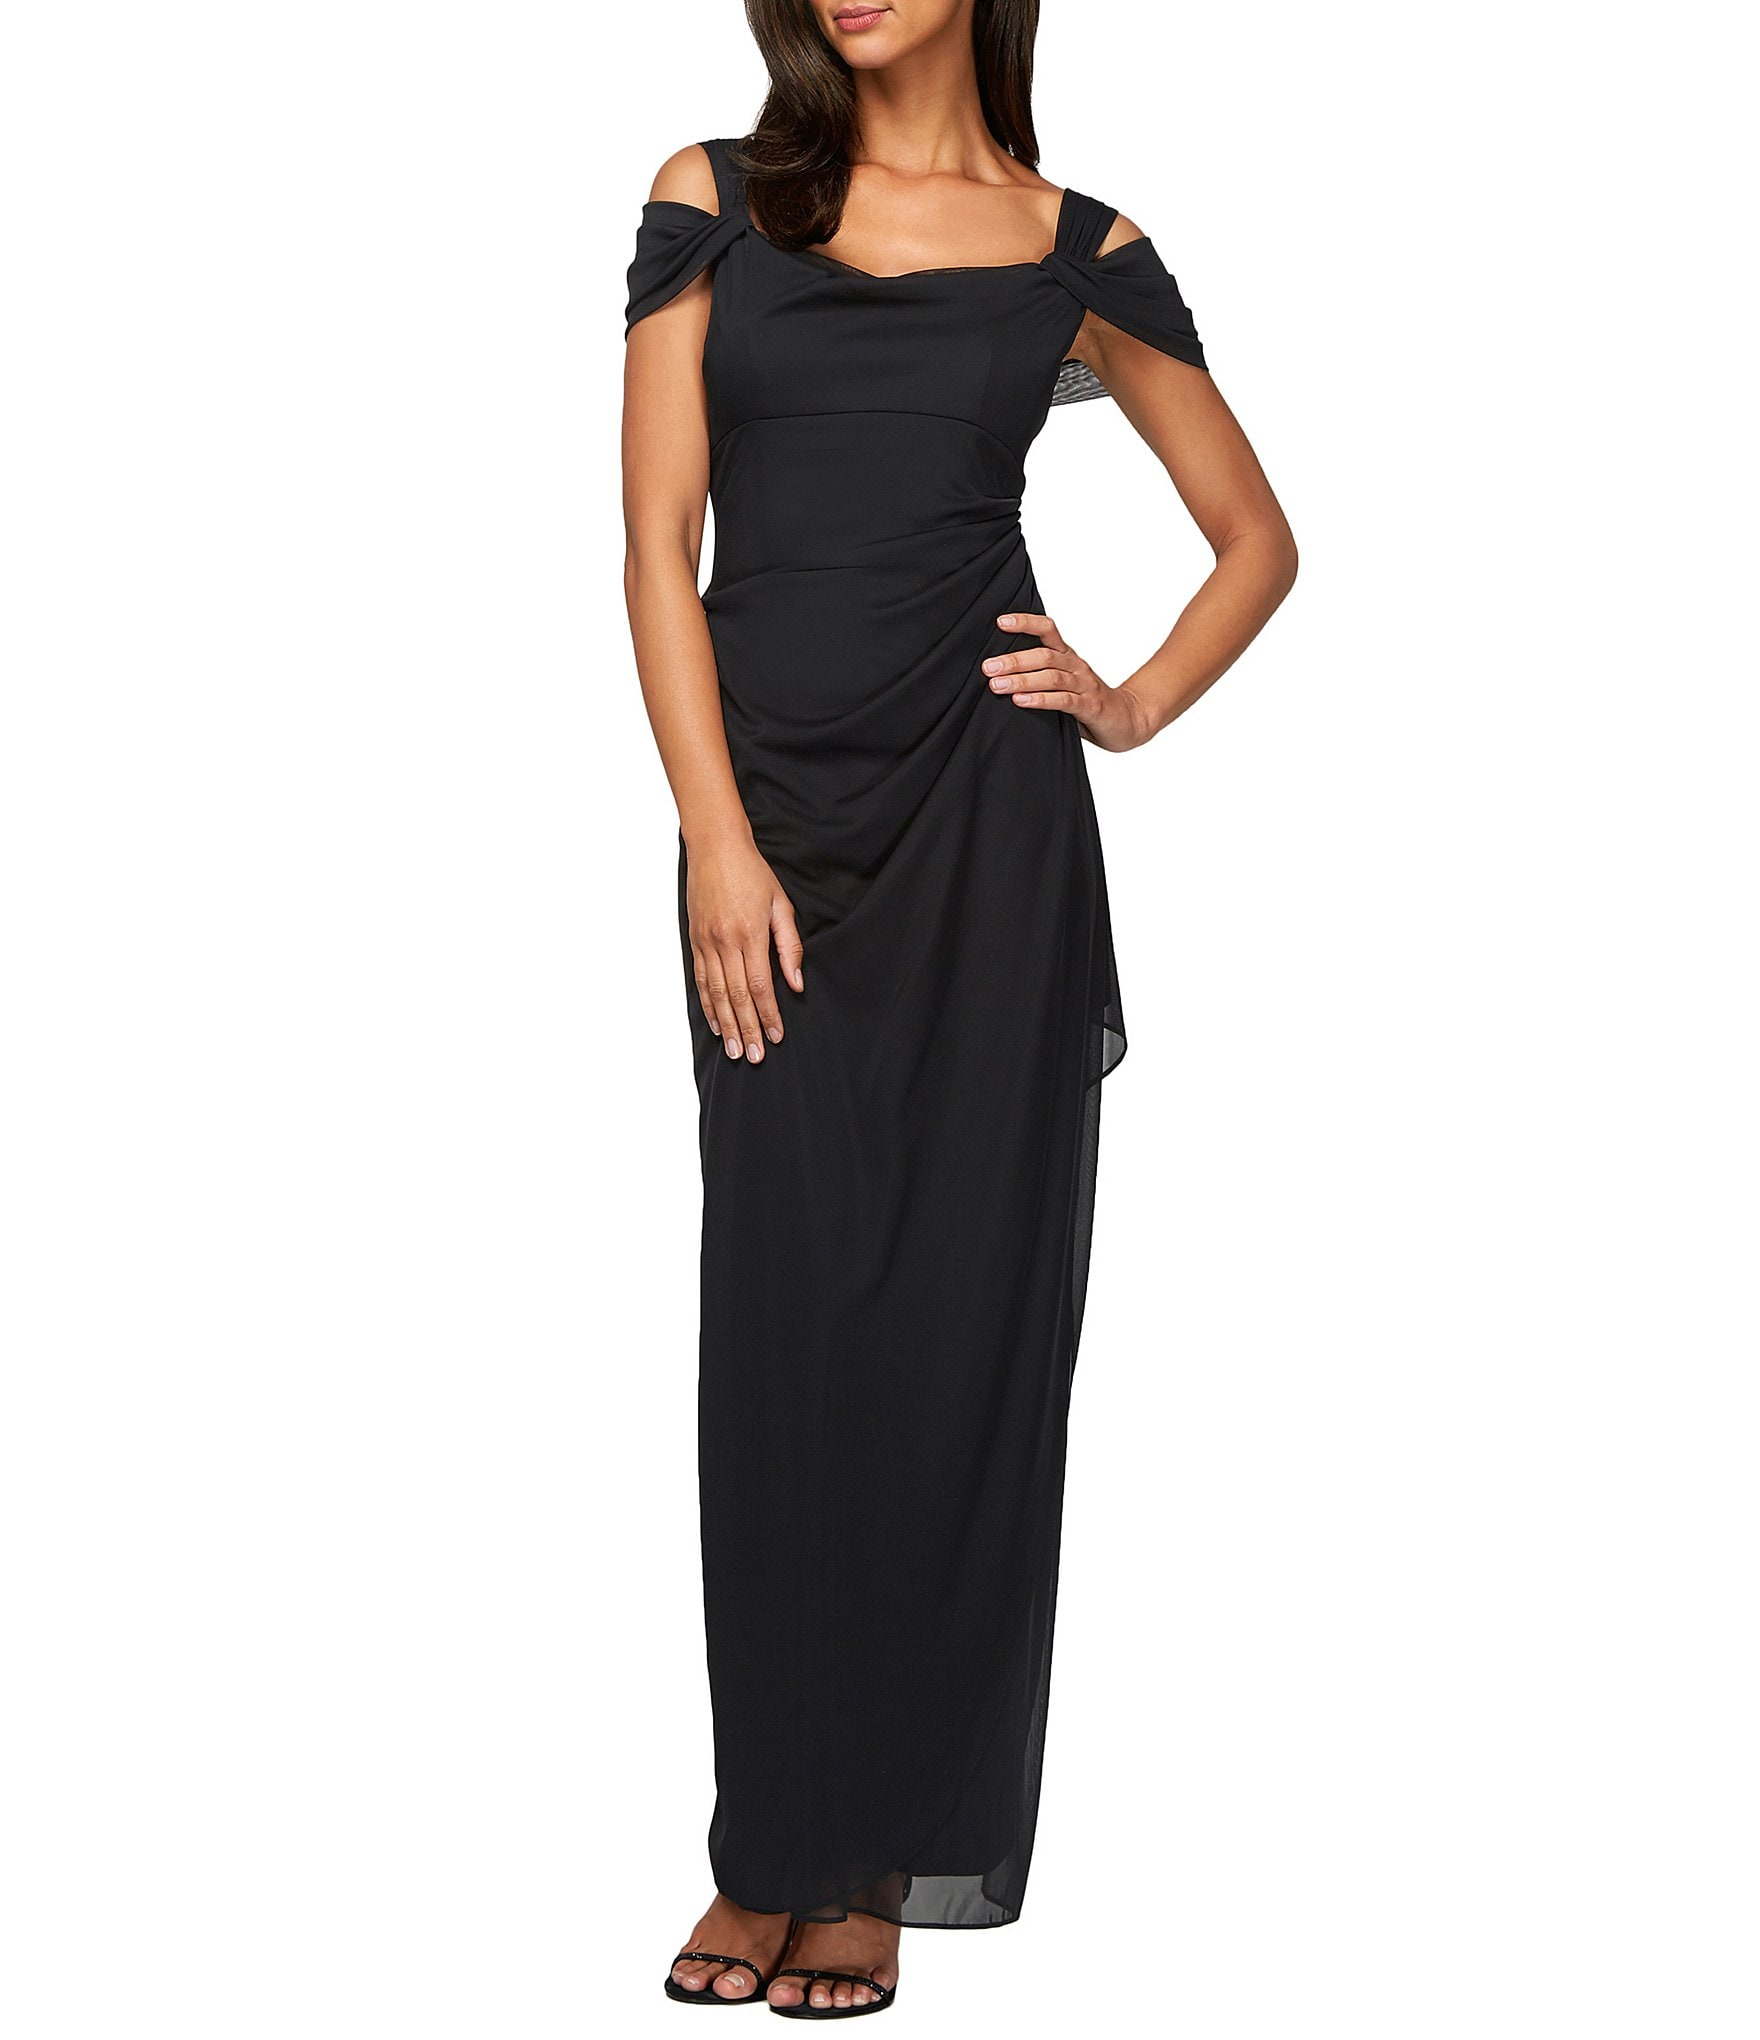 cfde44777a2 Black Women s Formal Dresses   Evening Gowns